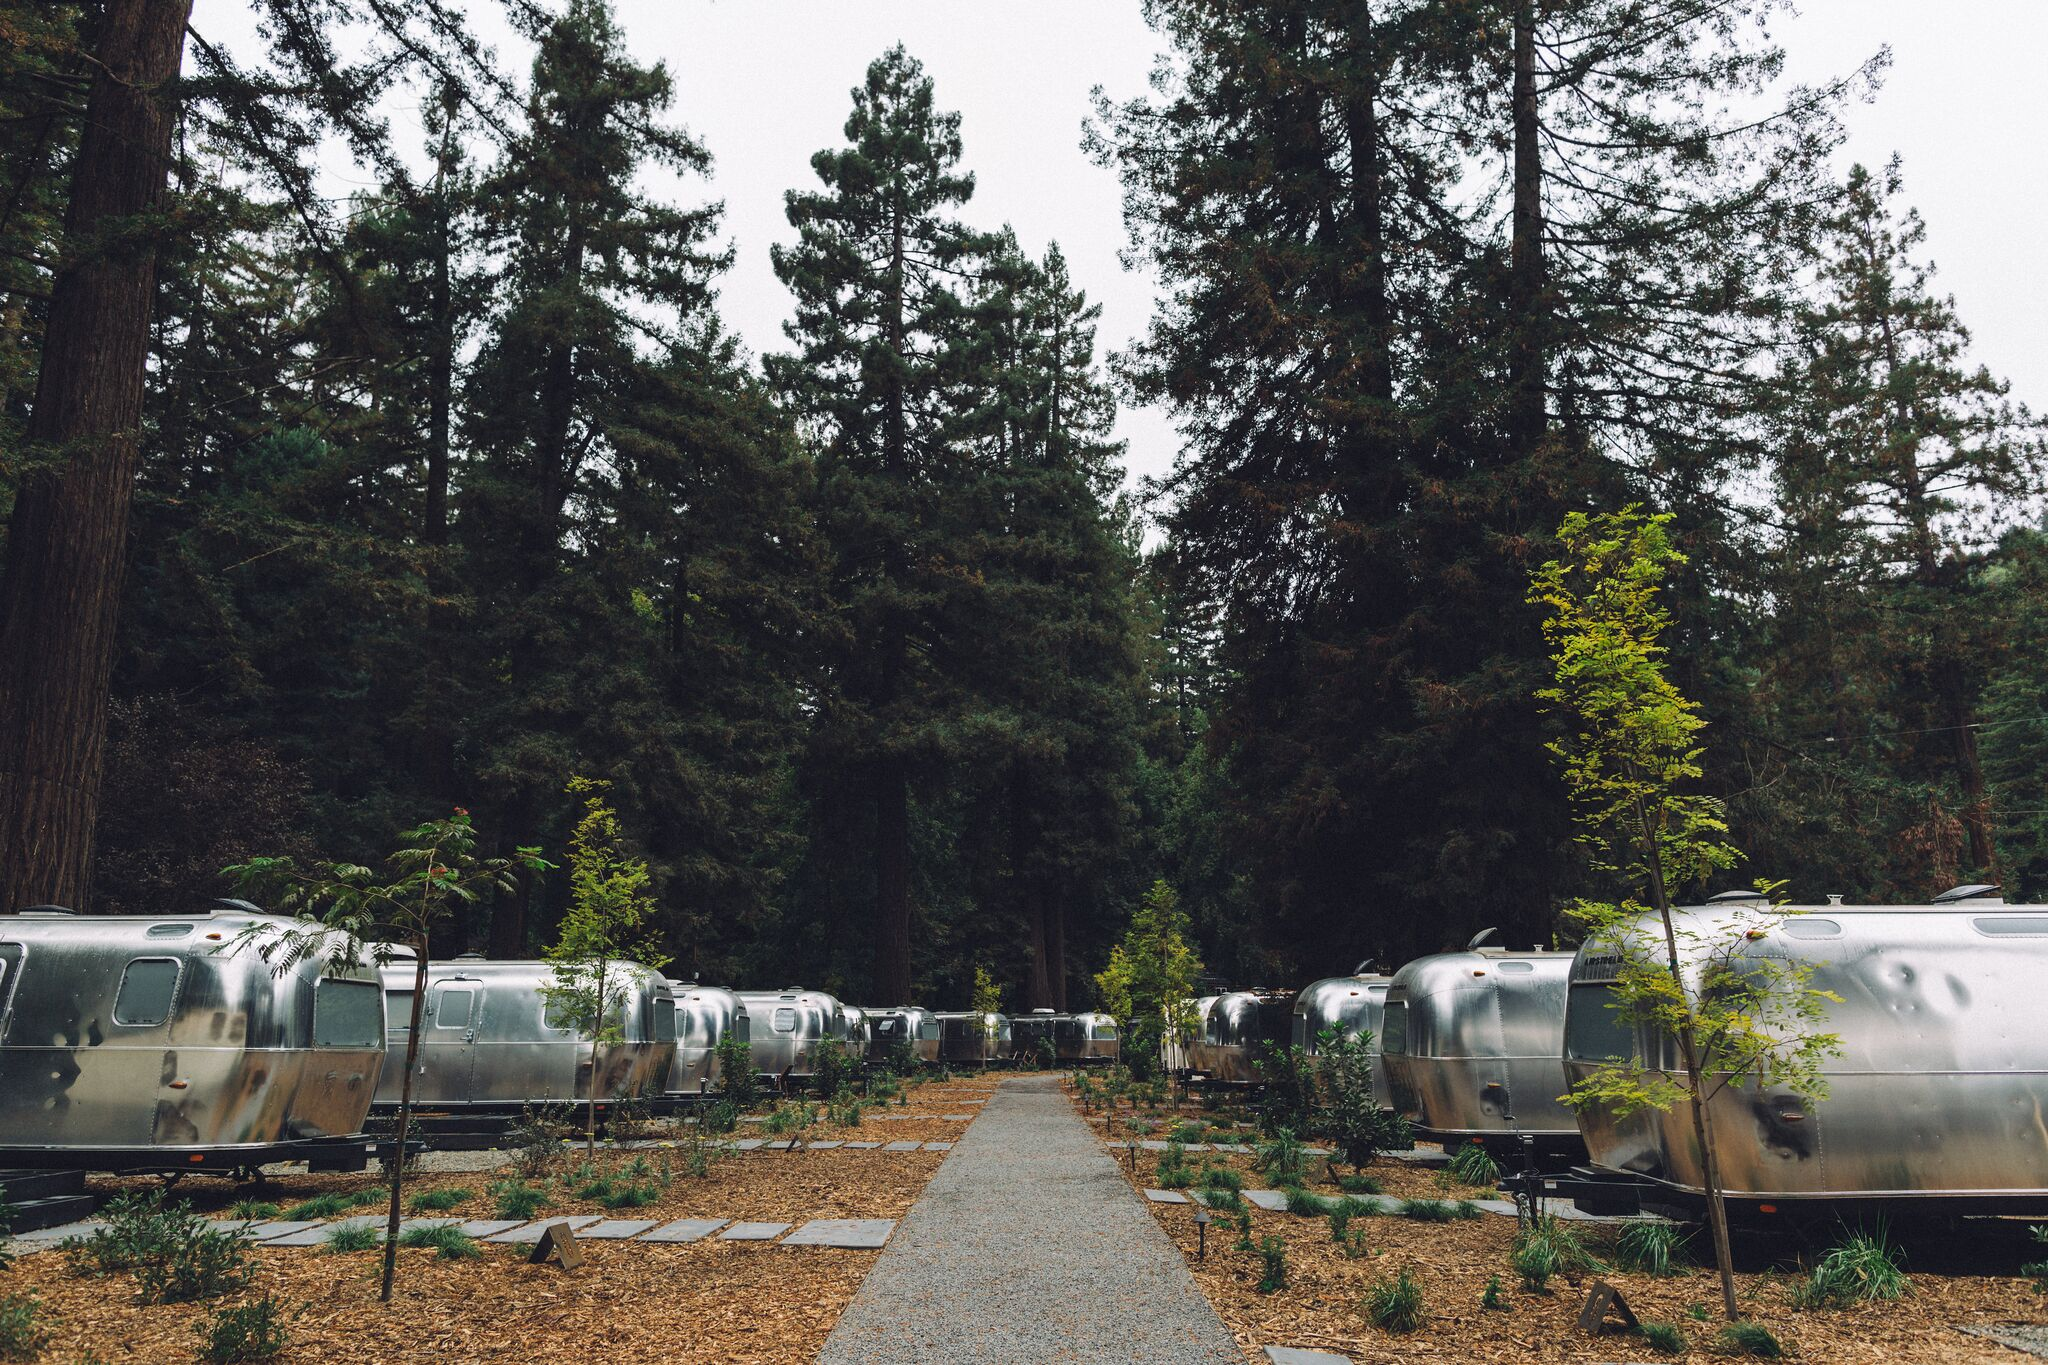 AutoCamp Russian River: The Future of Sustainable High-End Camping